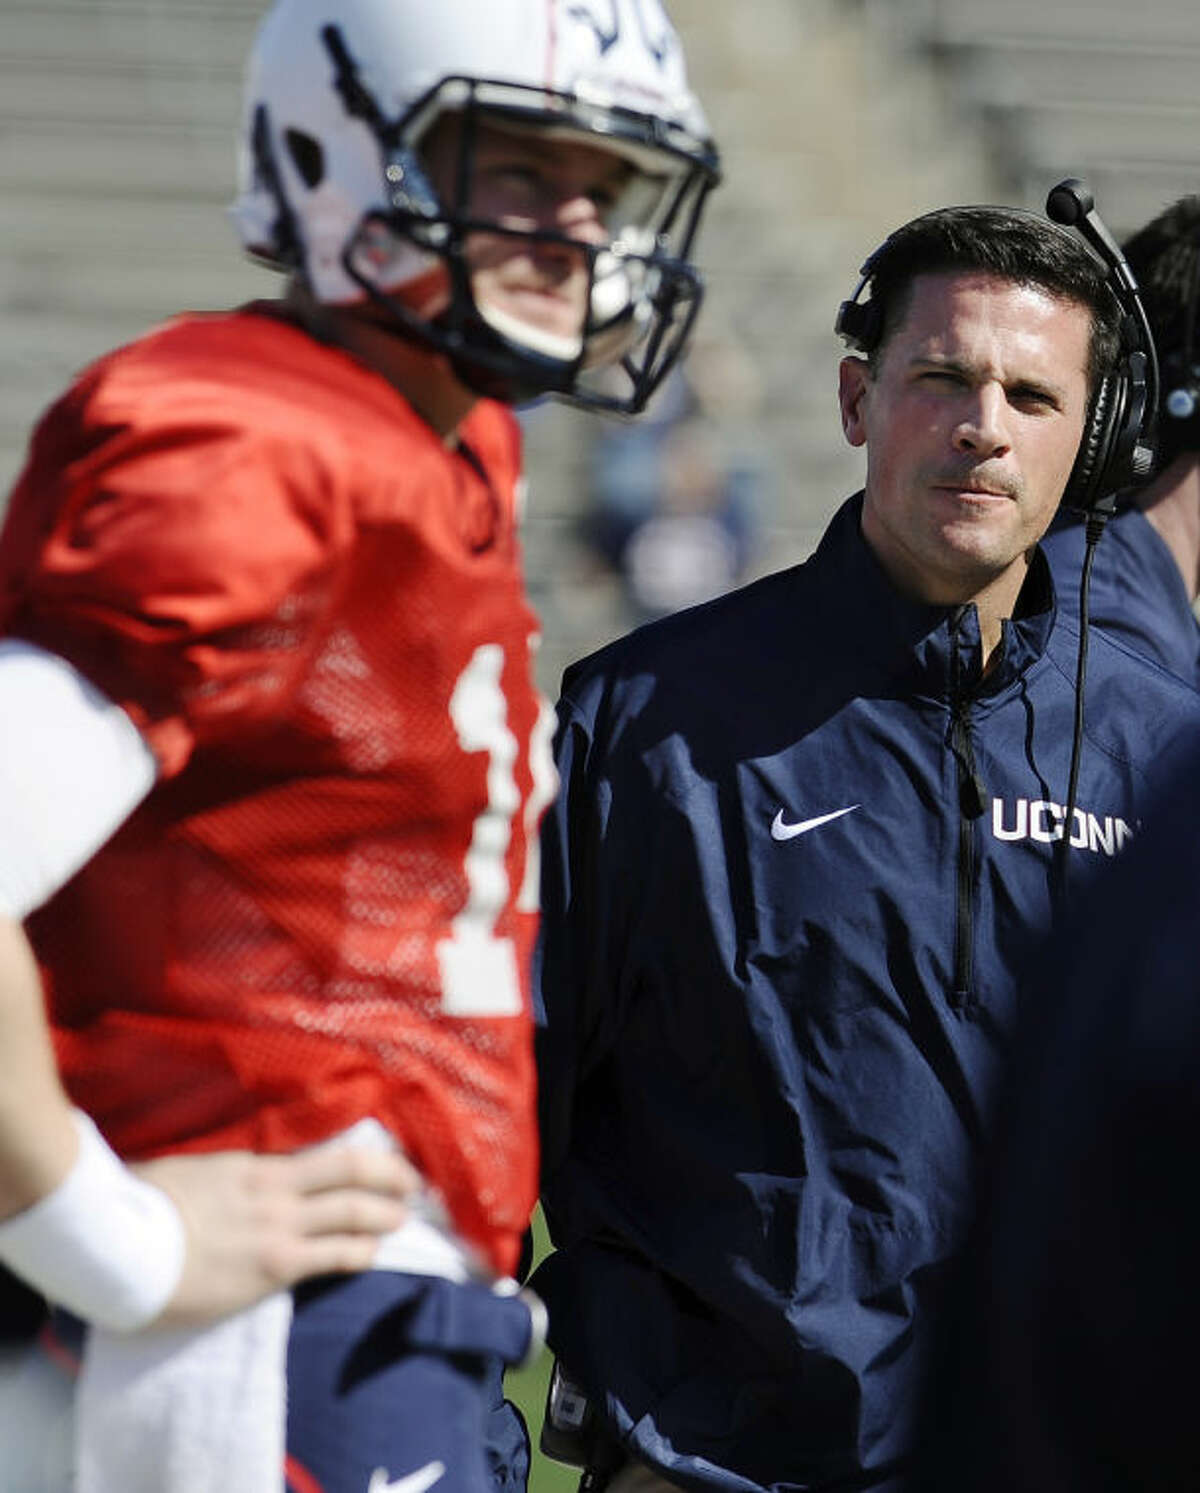 Connecticut coach Bob Diaco, right, looks toward quarterback Tim Boyle, left, during the first half of UConn's Blue-White spring NCAA college football game at Rentschler Field, Saturday, April 12, 2014, in East Hartford, Conn. (AP Photo/Jessica Hill)